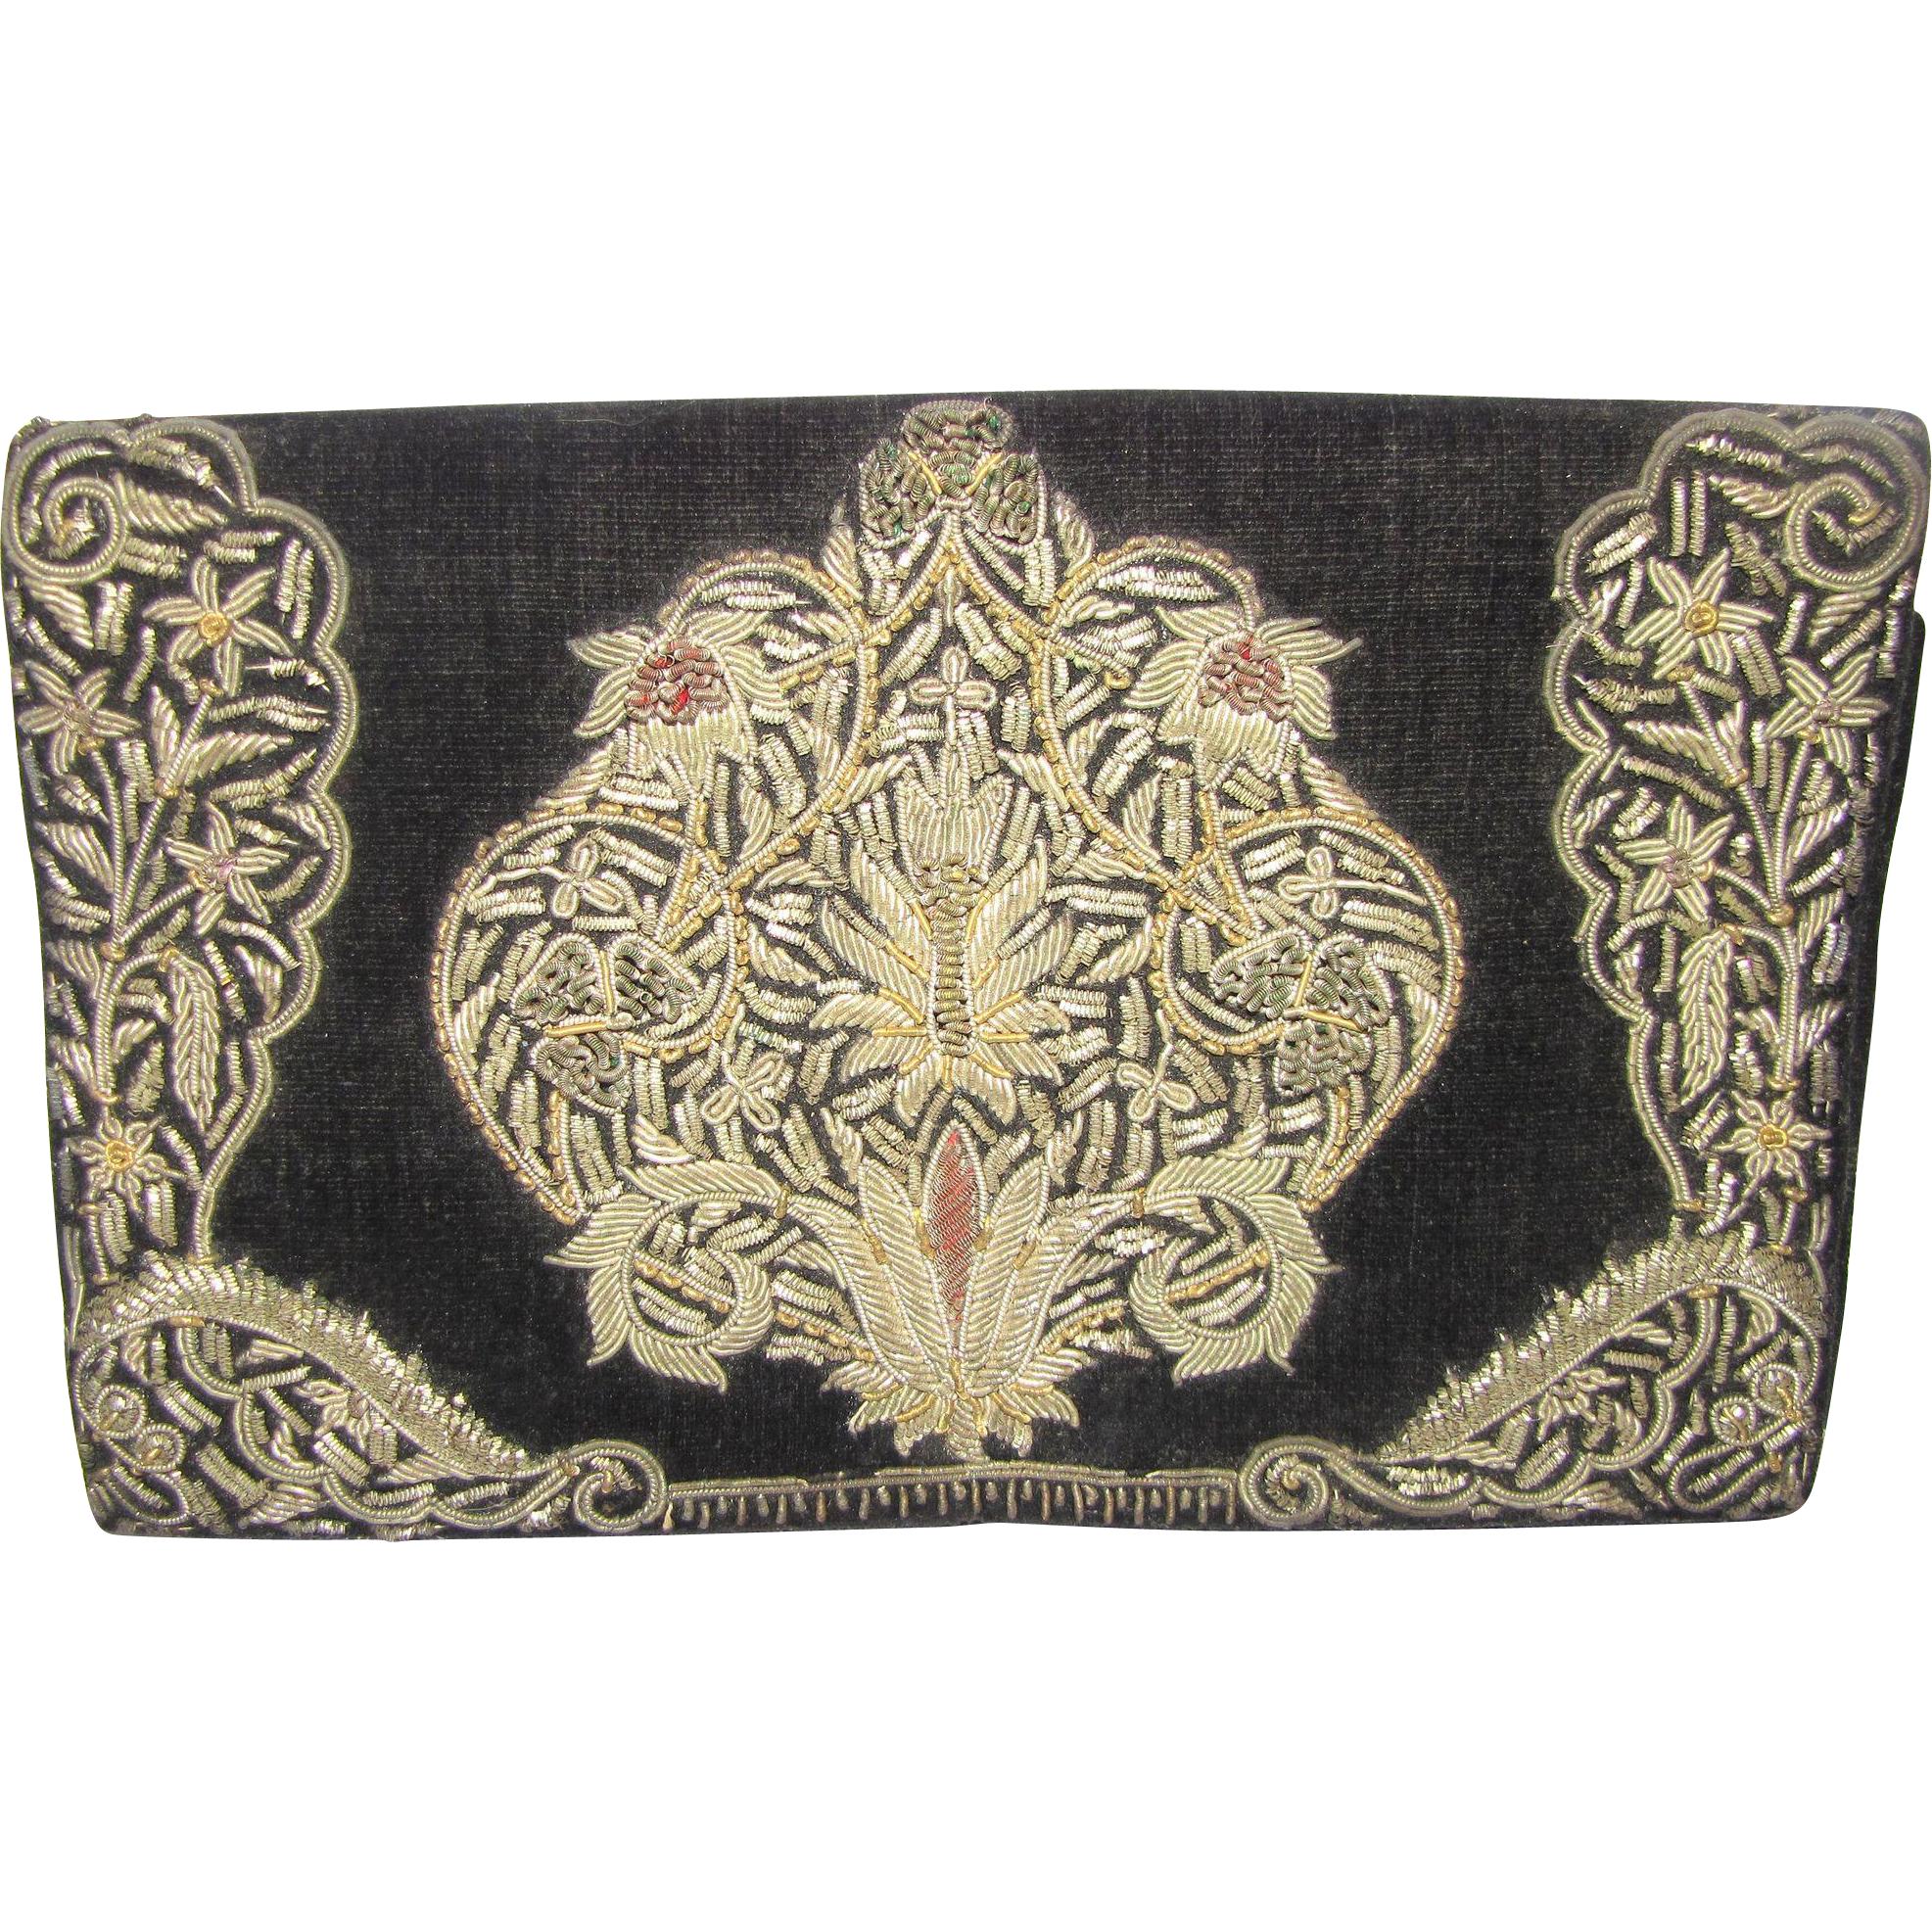 Beautiful vintage bullion embroidered clutch handbag from